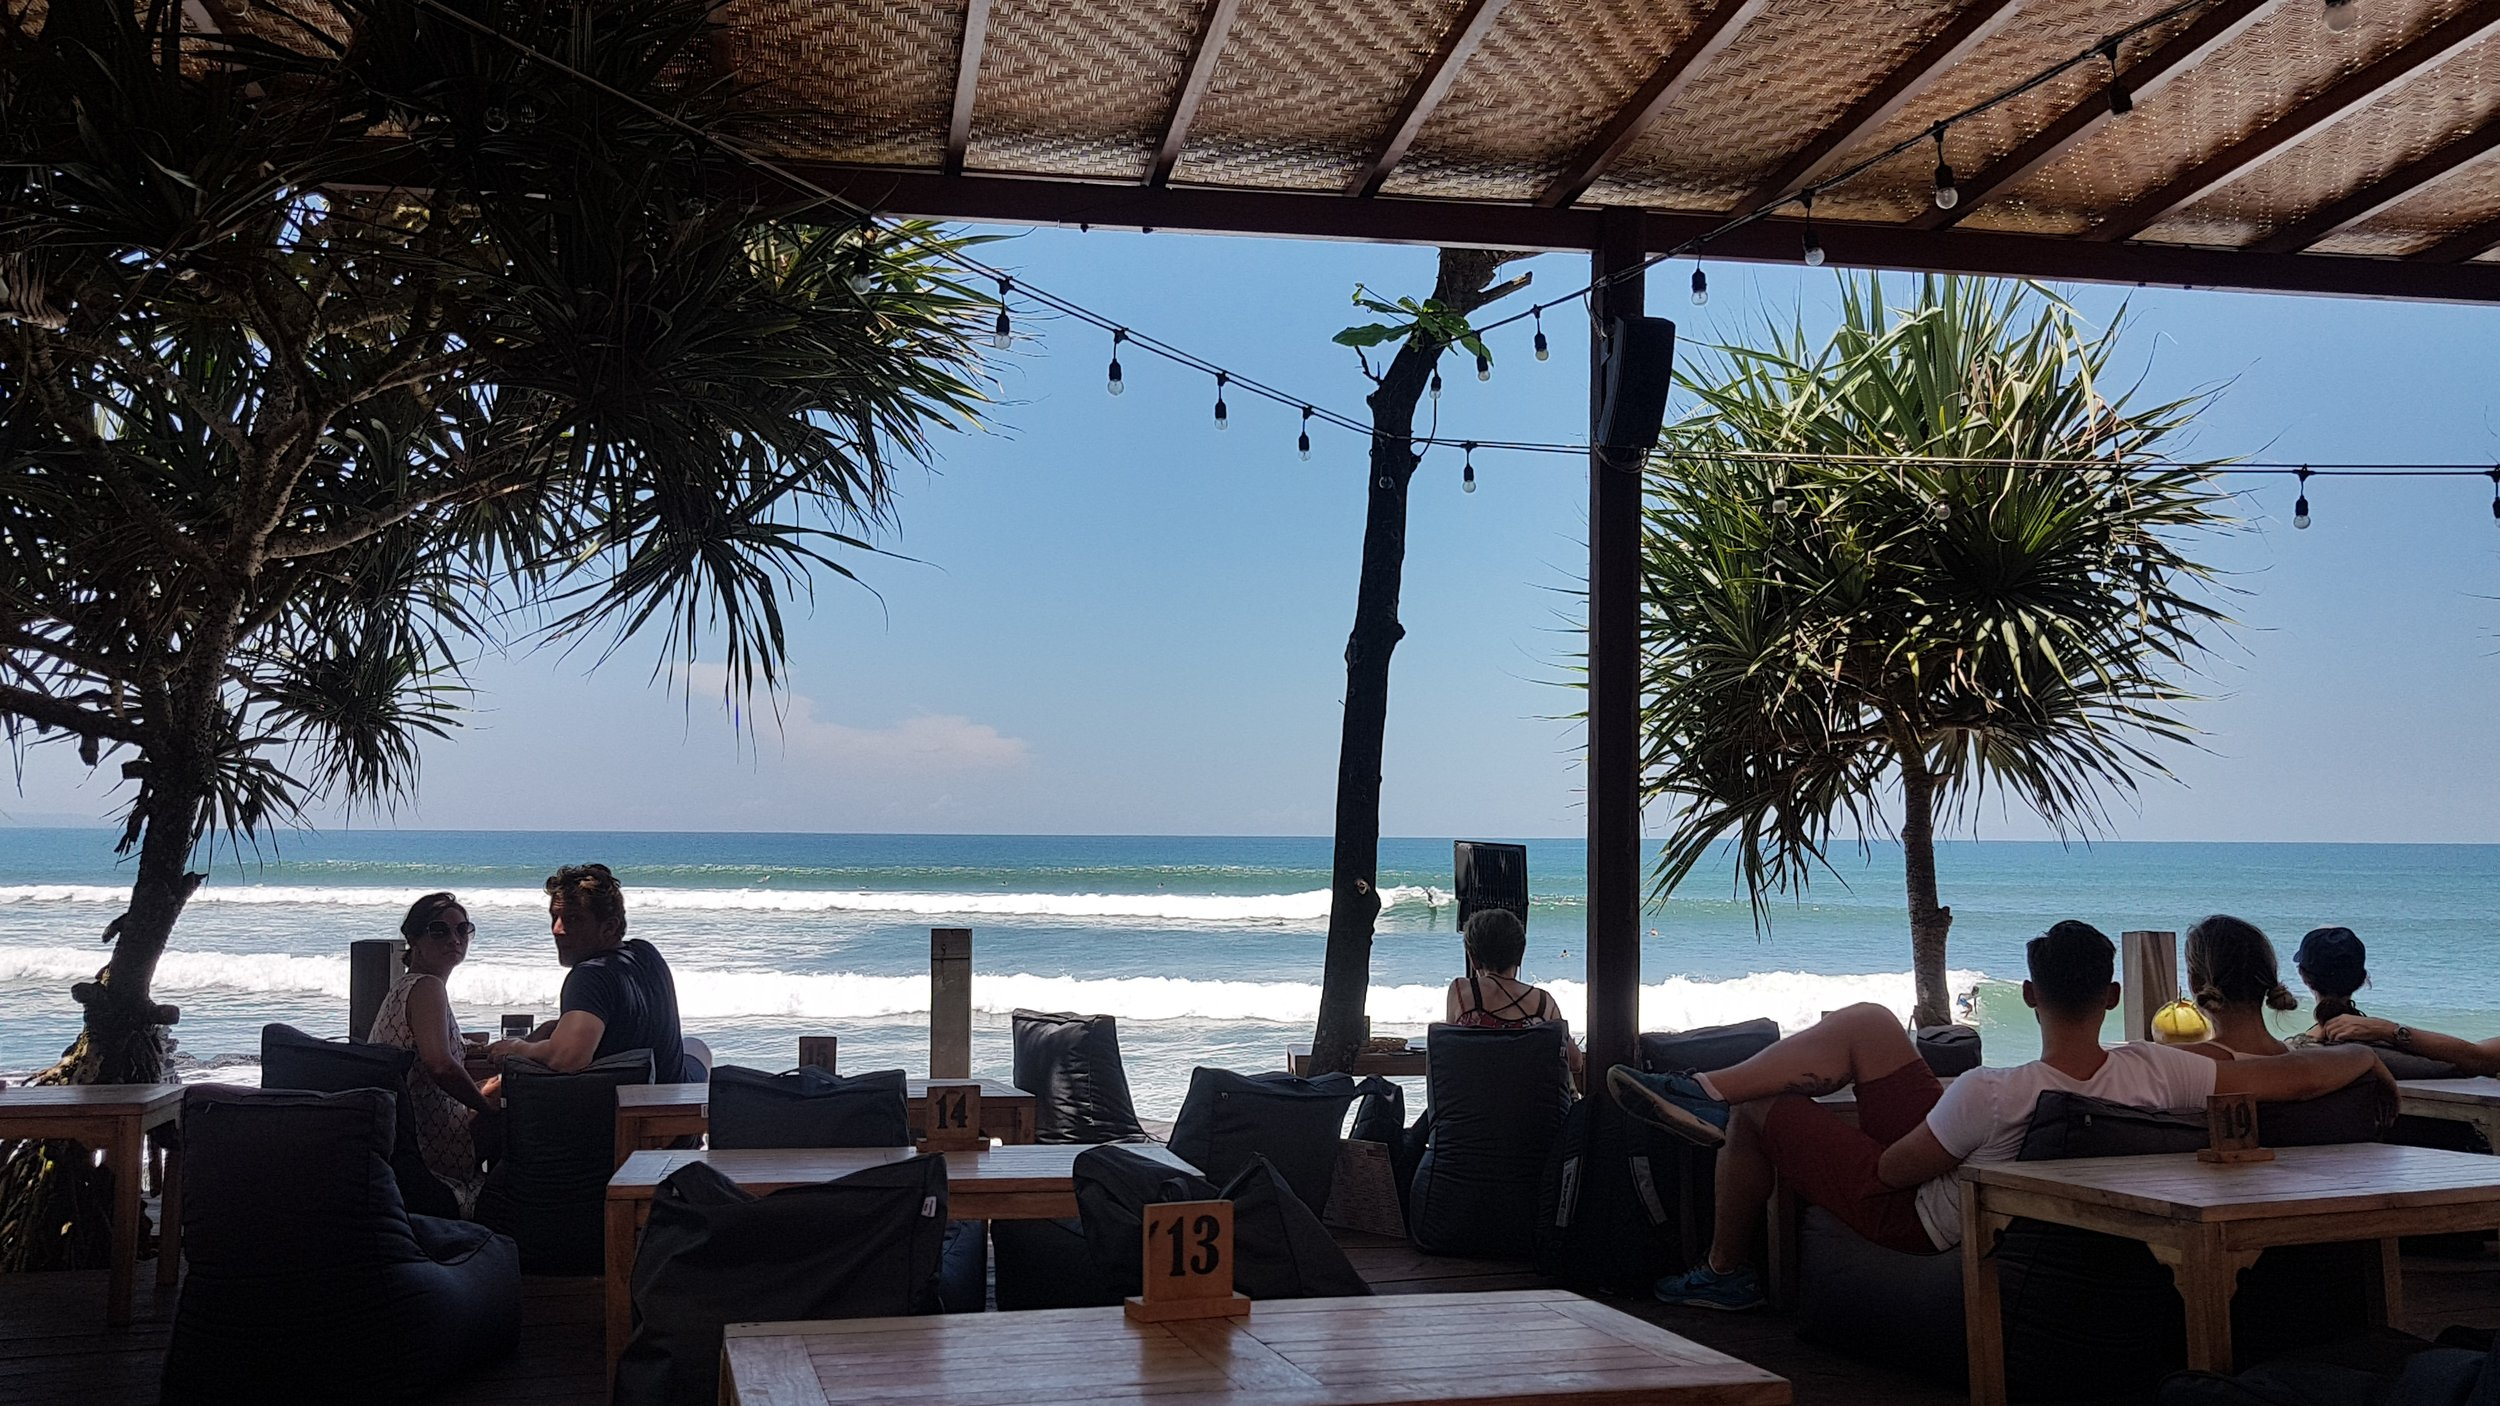 Seaweed Resto's view of the surf makes me always want to stay here after surfing to watch other people surf.